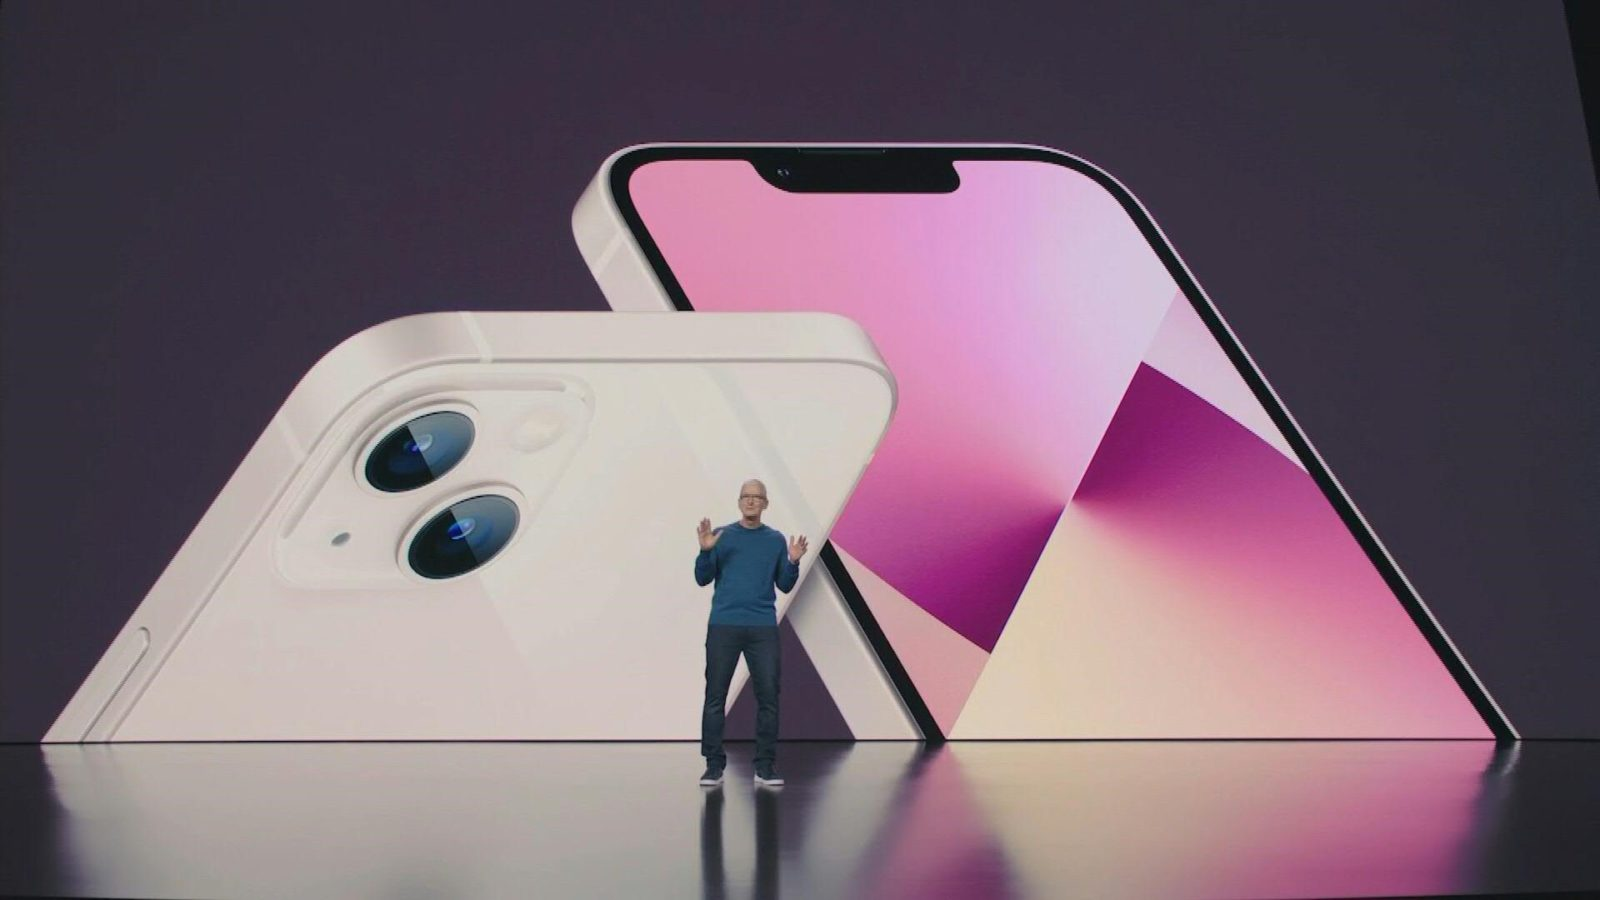 Amidst challenges like legal battles, Apple unveils the new iPhone 13 range